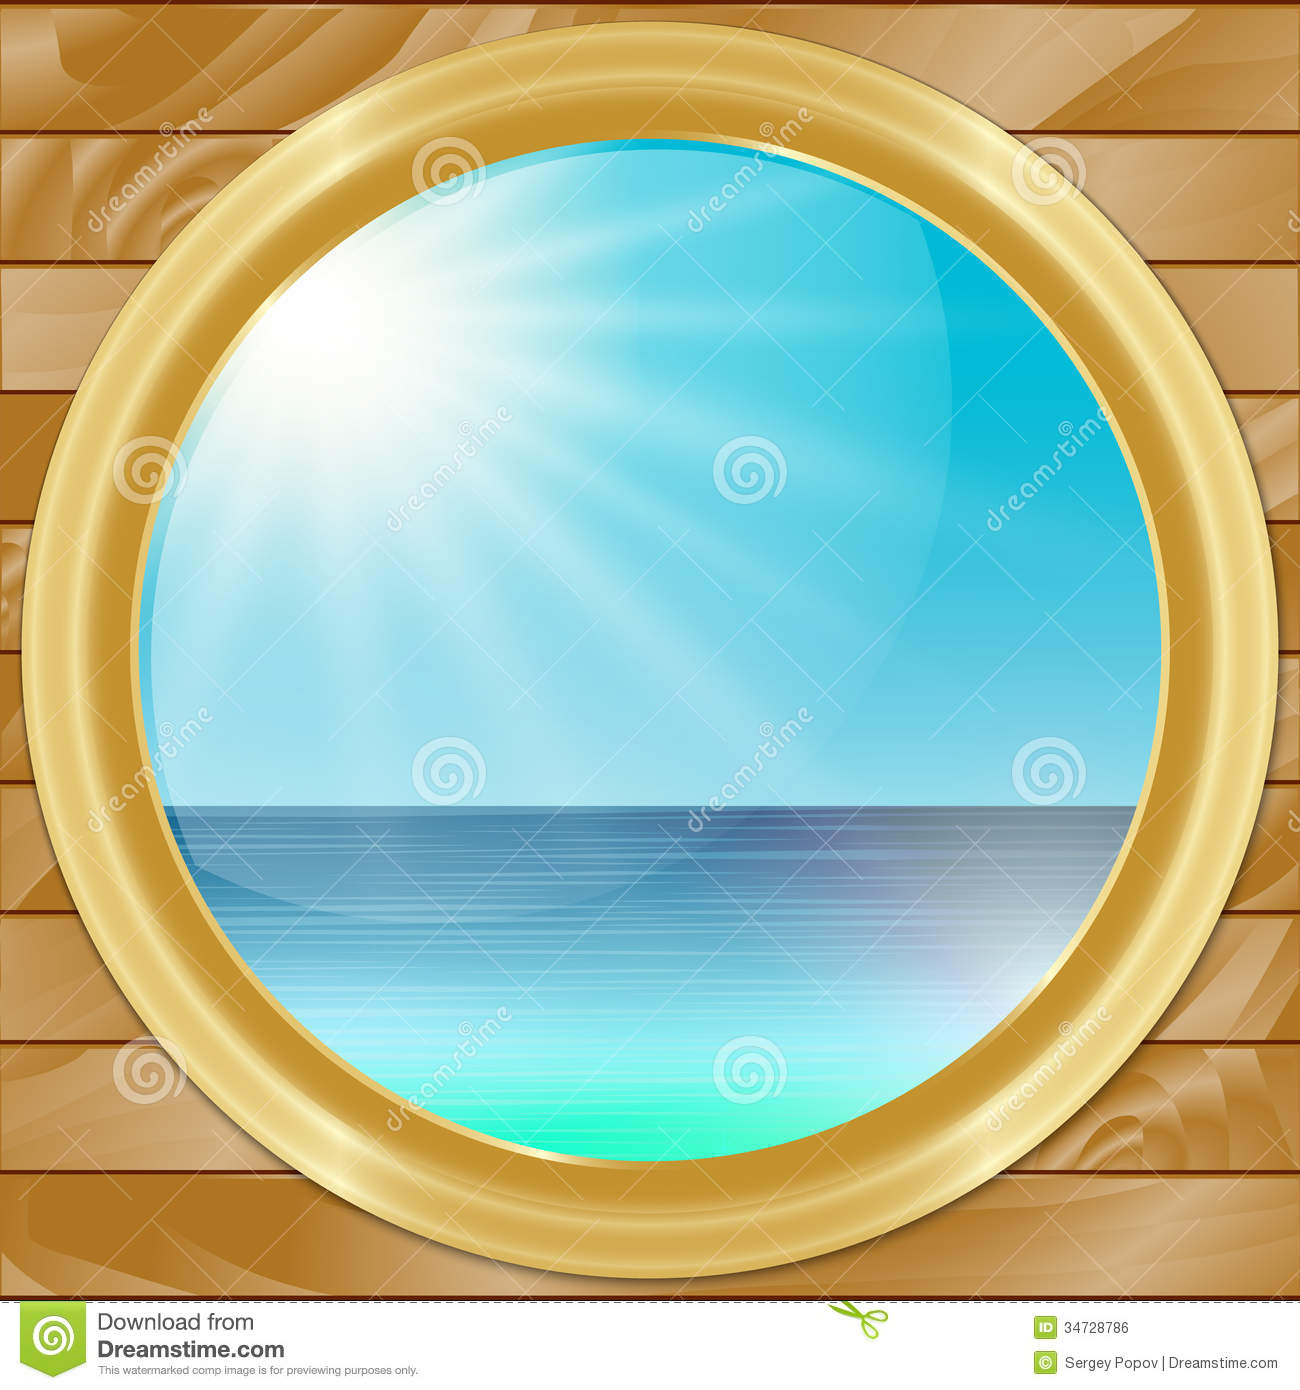 Vector Ship Porthole With SeaScape View Stock Vector - Image: 34728786